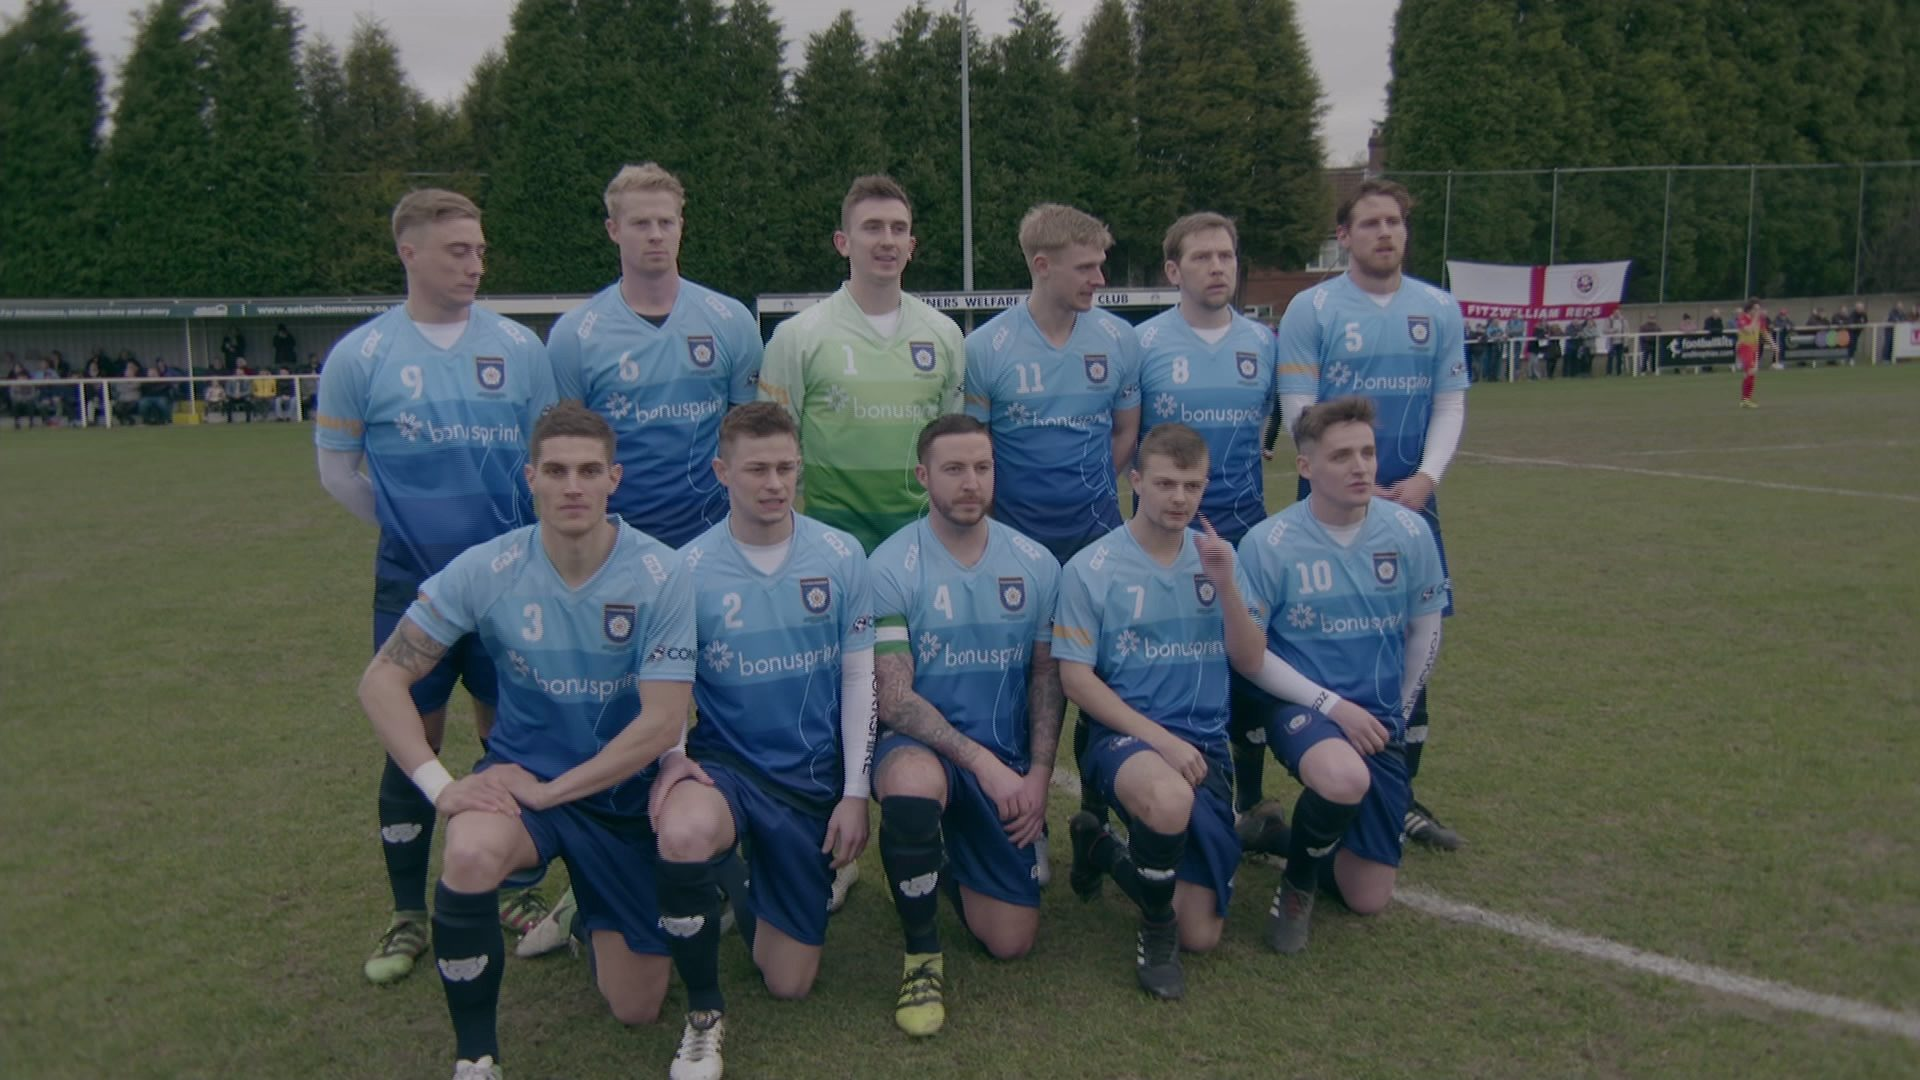 Yorkshire Football Team Debuts On World Stage